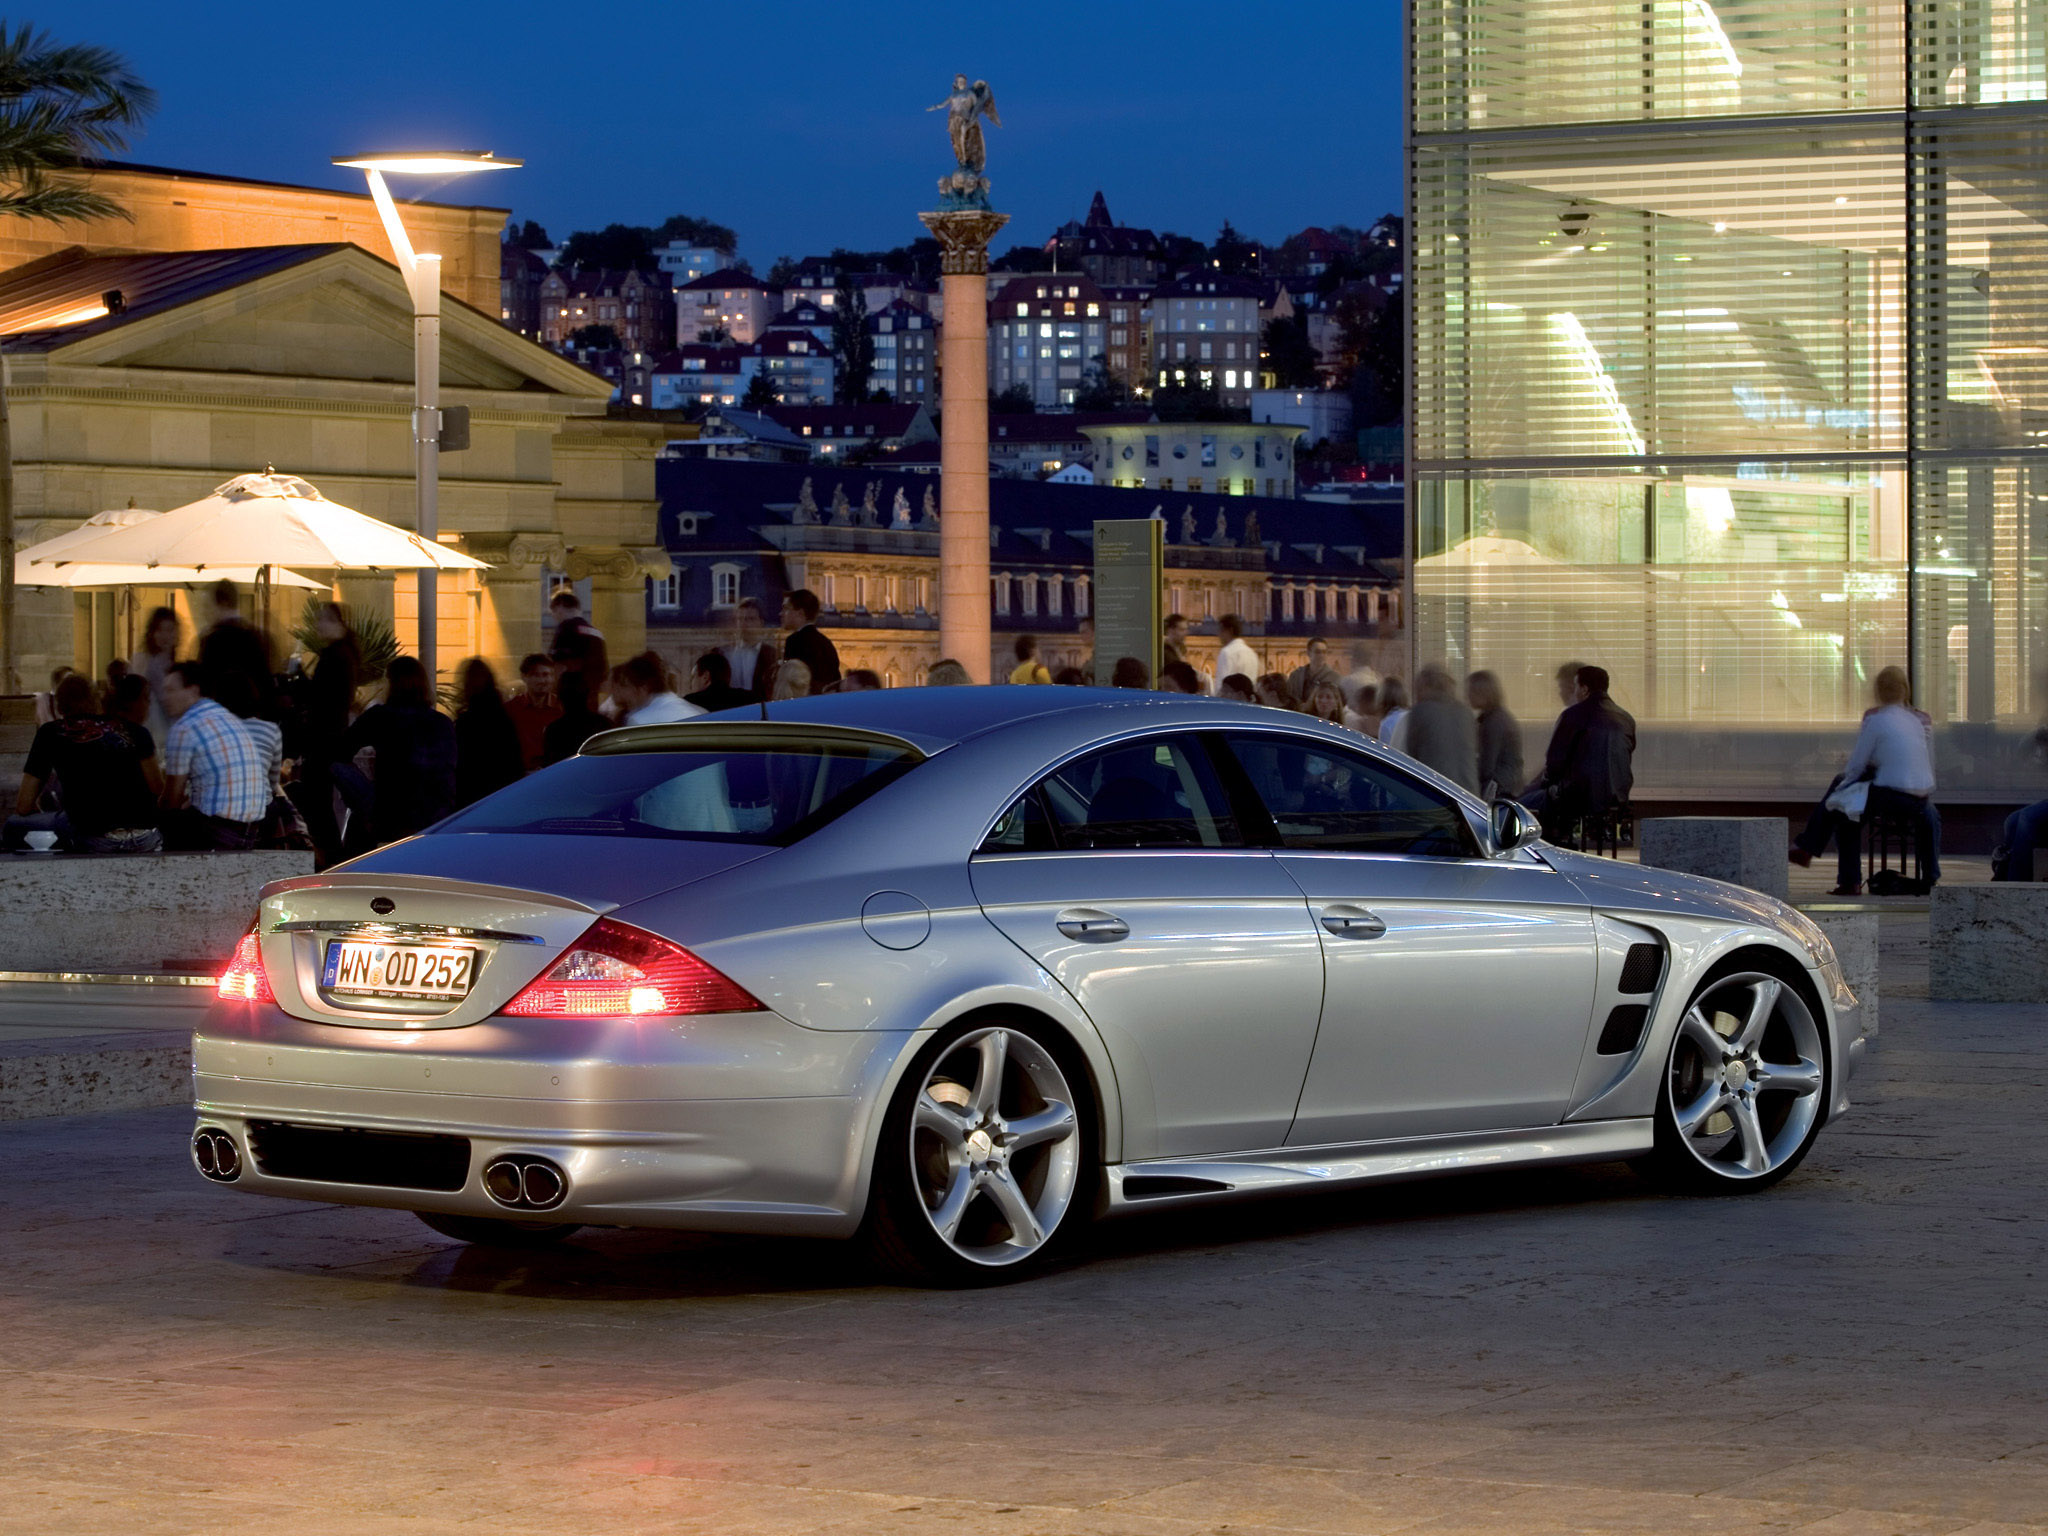 lorinser mercedes cls c219 2005 lorinser mercedes cls c219 2005 photo 4 car in pictures car. Black Bedroom Furniture Sets. Home Design Ideas